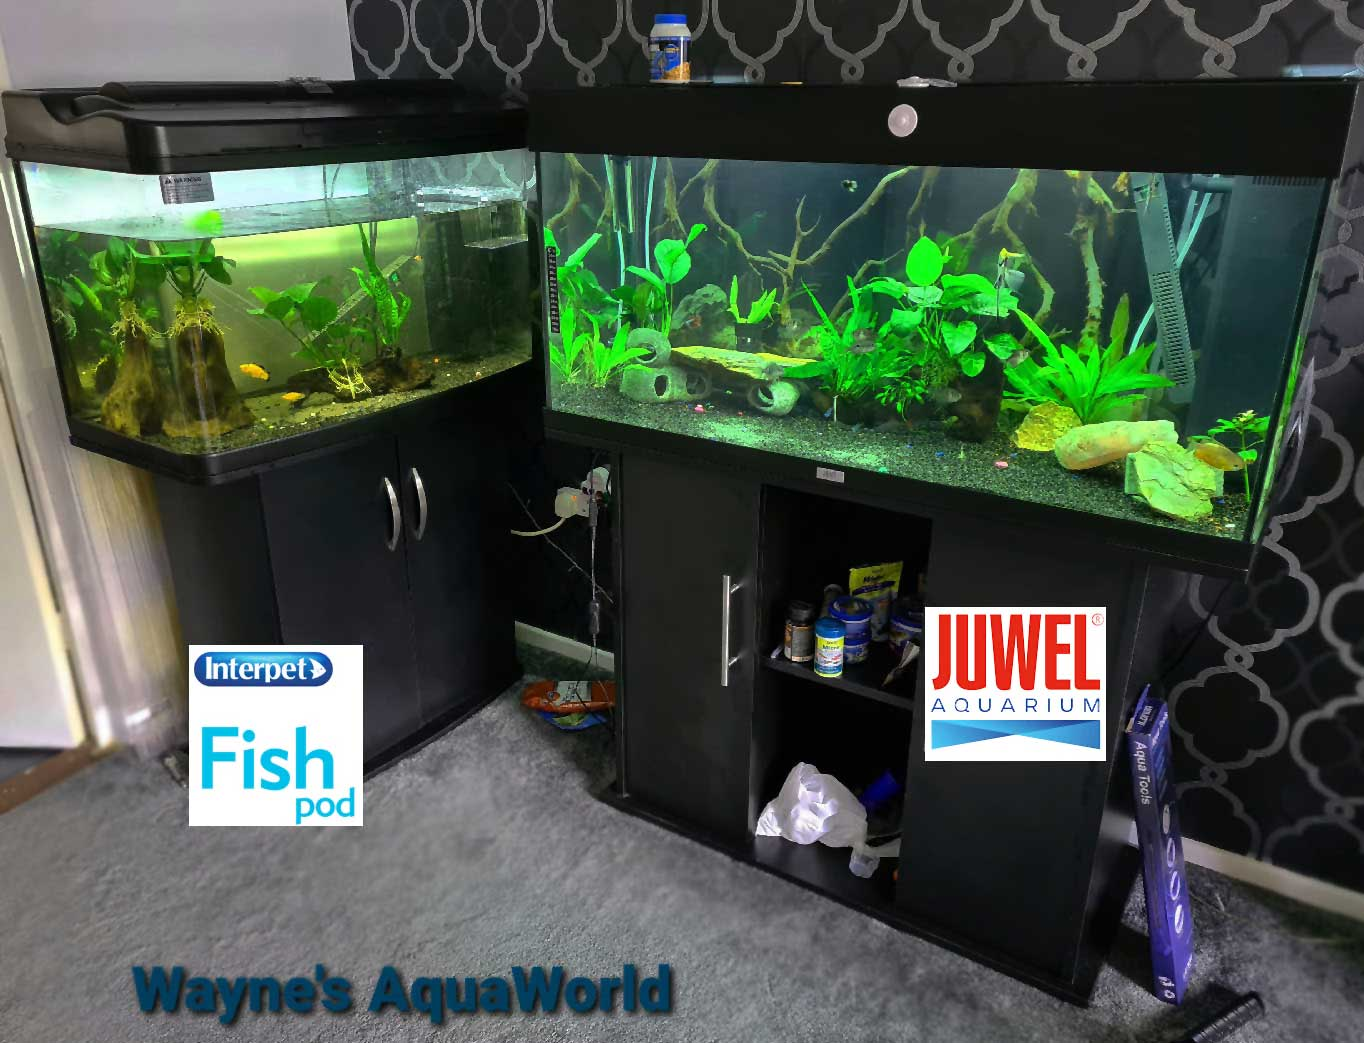 I've upgraded my Fish Tank Aquarium AGAIN!! If you're looking for a great aquarium, here's a simple guide by Wayne's Aqua World. setup